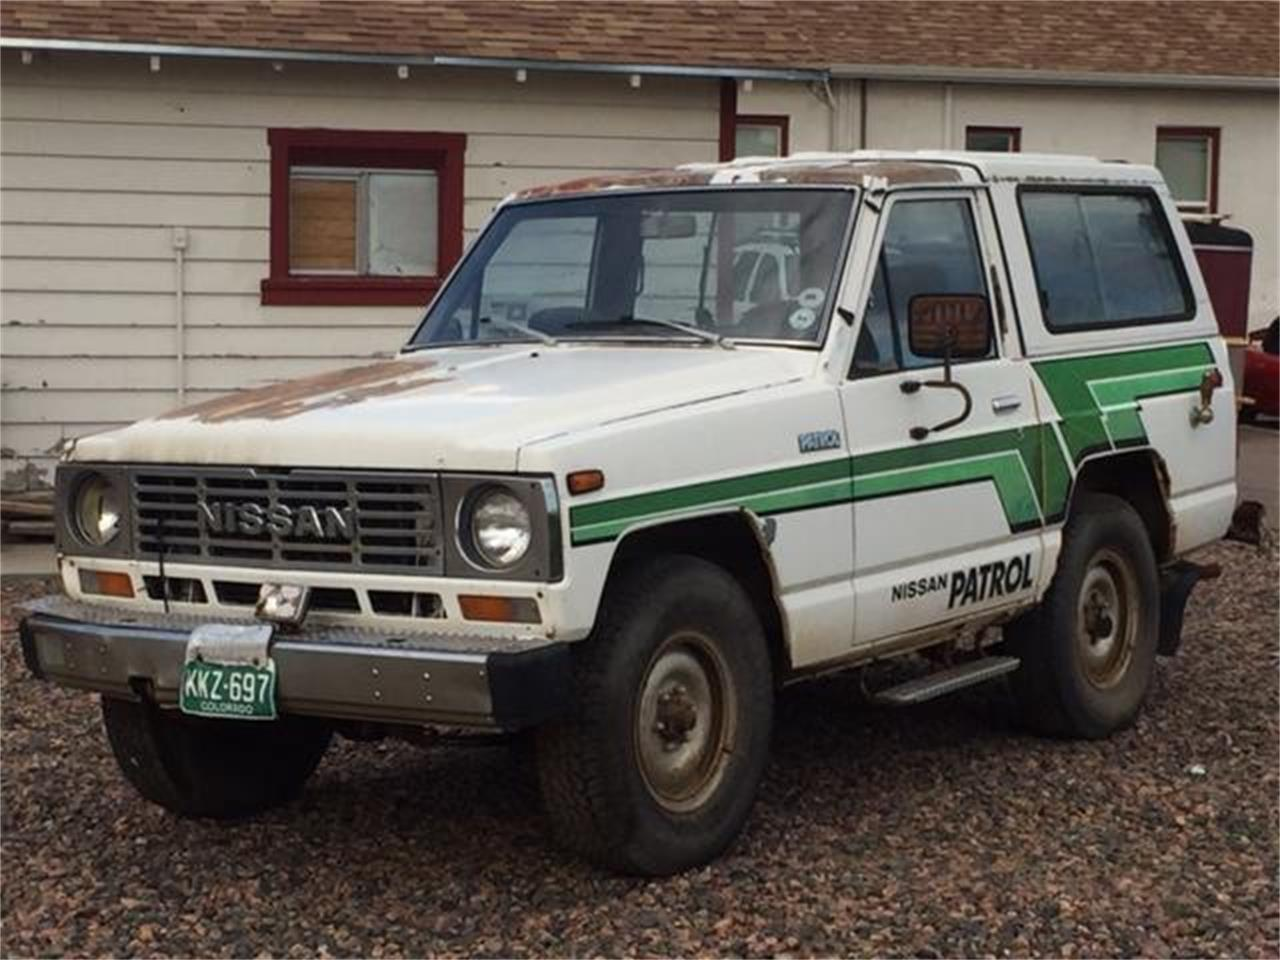 Large Picture of '83 Nissan Patrol located in West Denver Colorado - $13,900.00 - NNF8